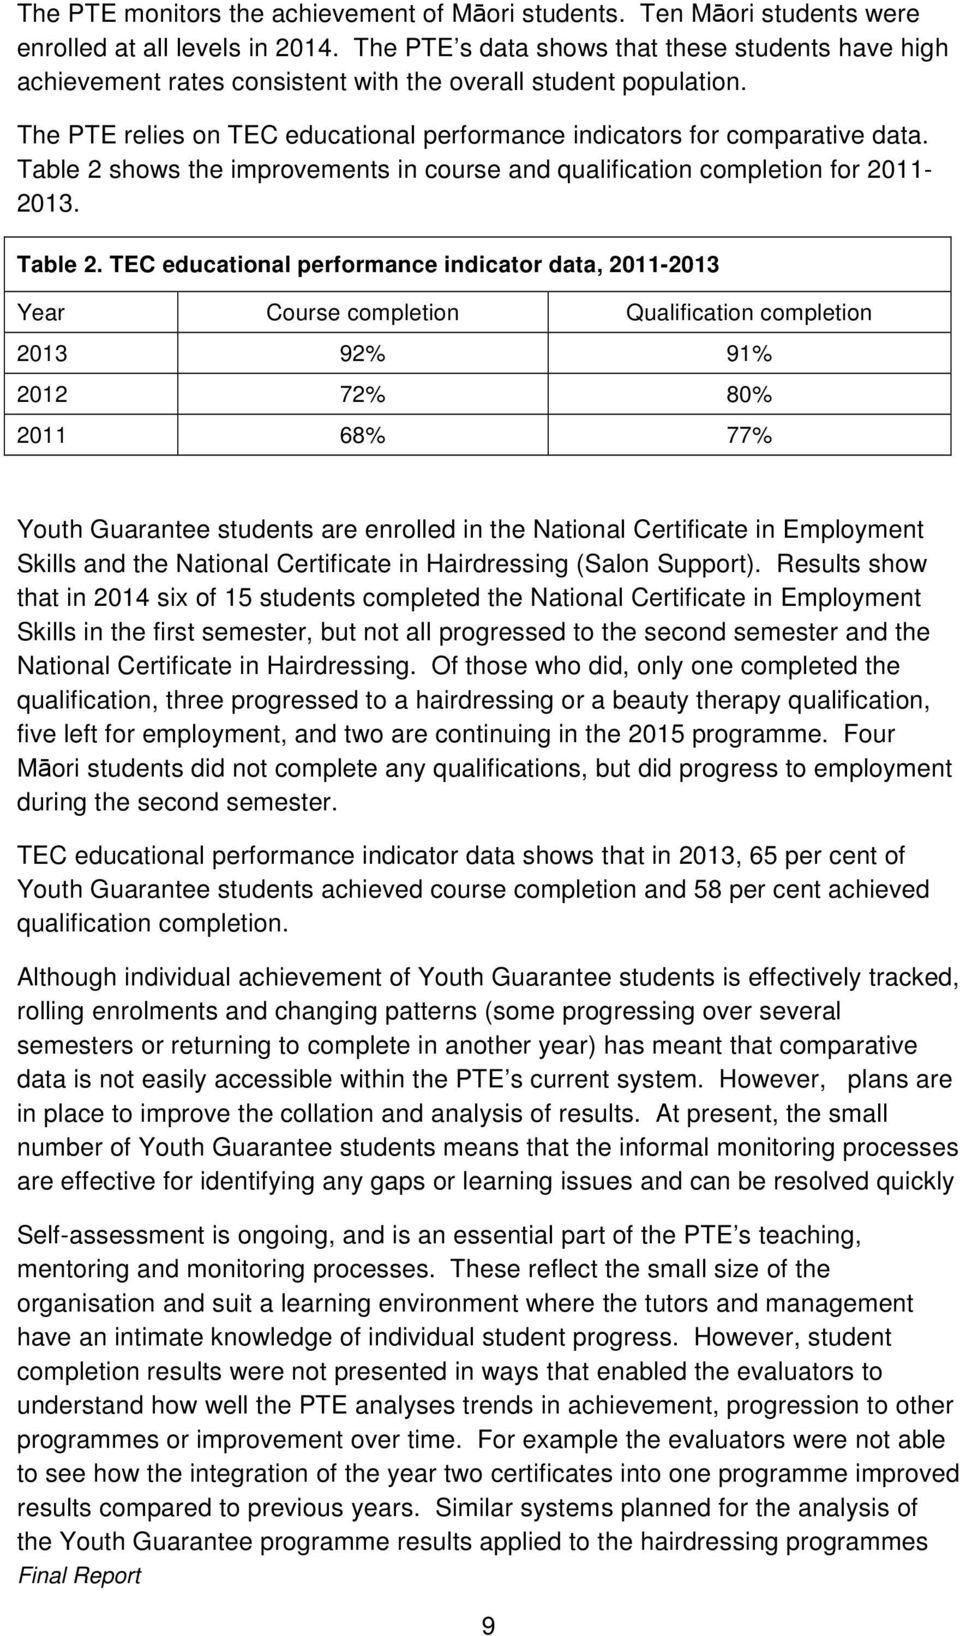 Table 2 shows the improvements in course and qualification completion for 2011-2013. Table 2.